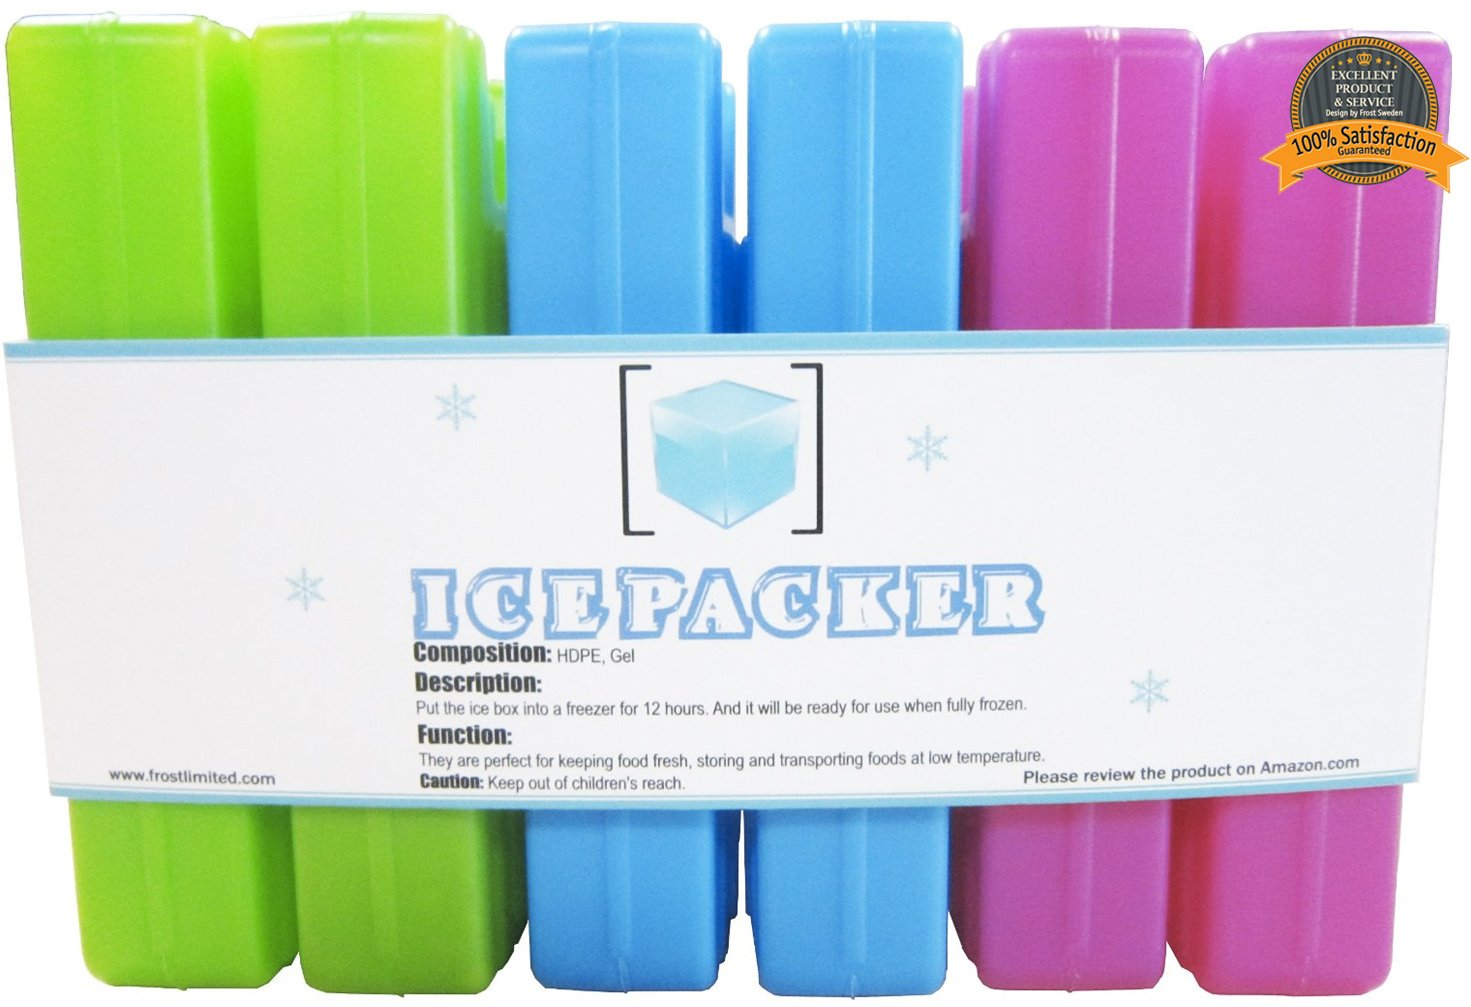 6 Reusable Ice Packs for Lunch Boxes, Lunch Bags, Coolers, and Cooler Bags – Slim and Long-Lasting To Keep Food Cold and Fresh – Set of 6 Compact Freezer Packs – Multicolored